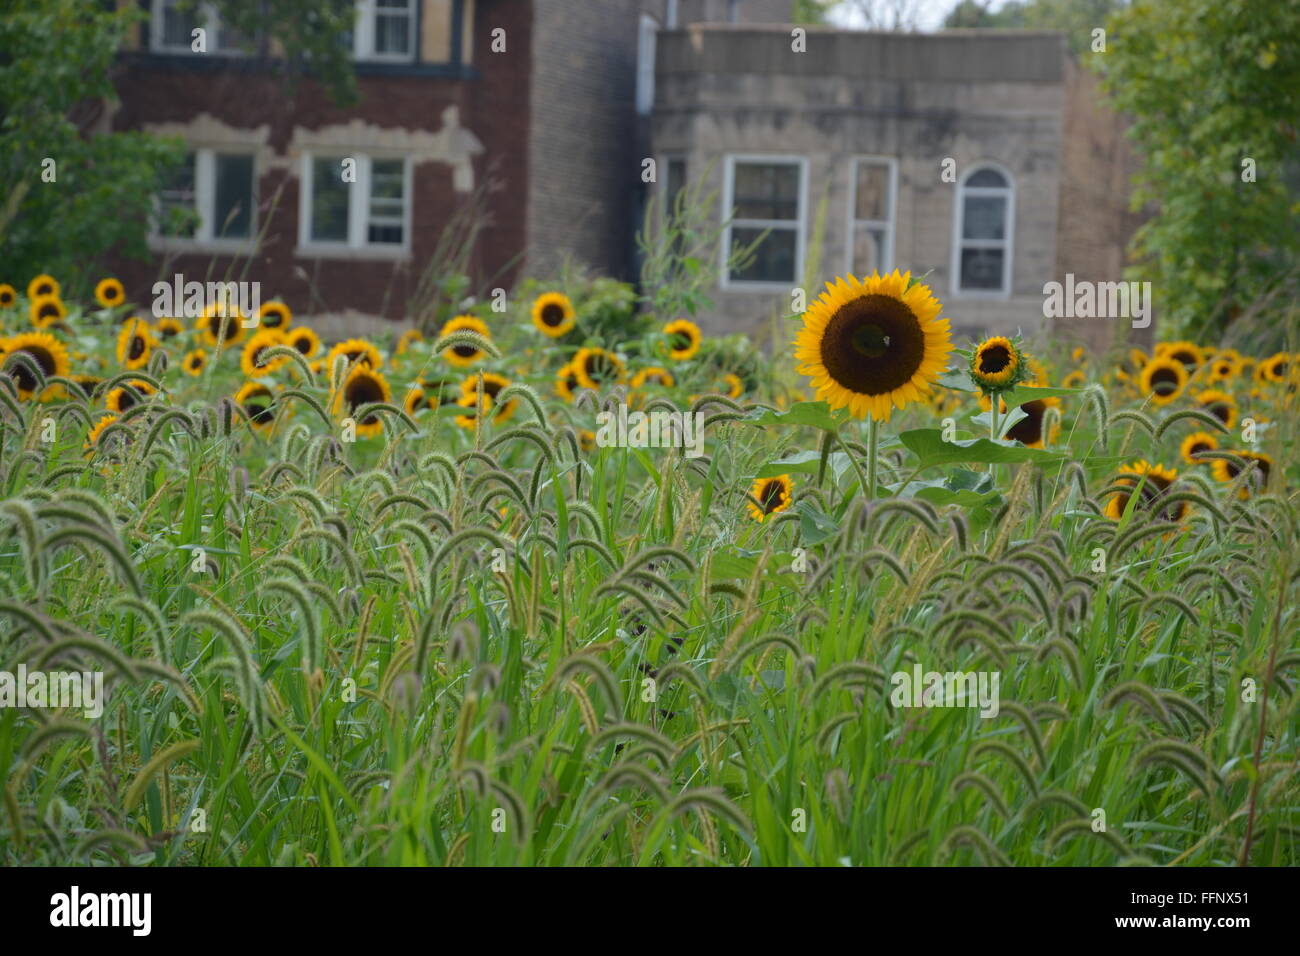 A field of sunflowers with homes in the background at the Garfield Park Conservatory on Chicago's near west - Stock Image